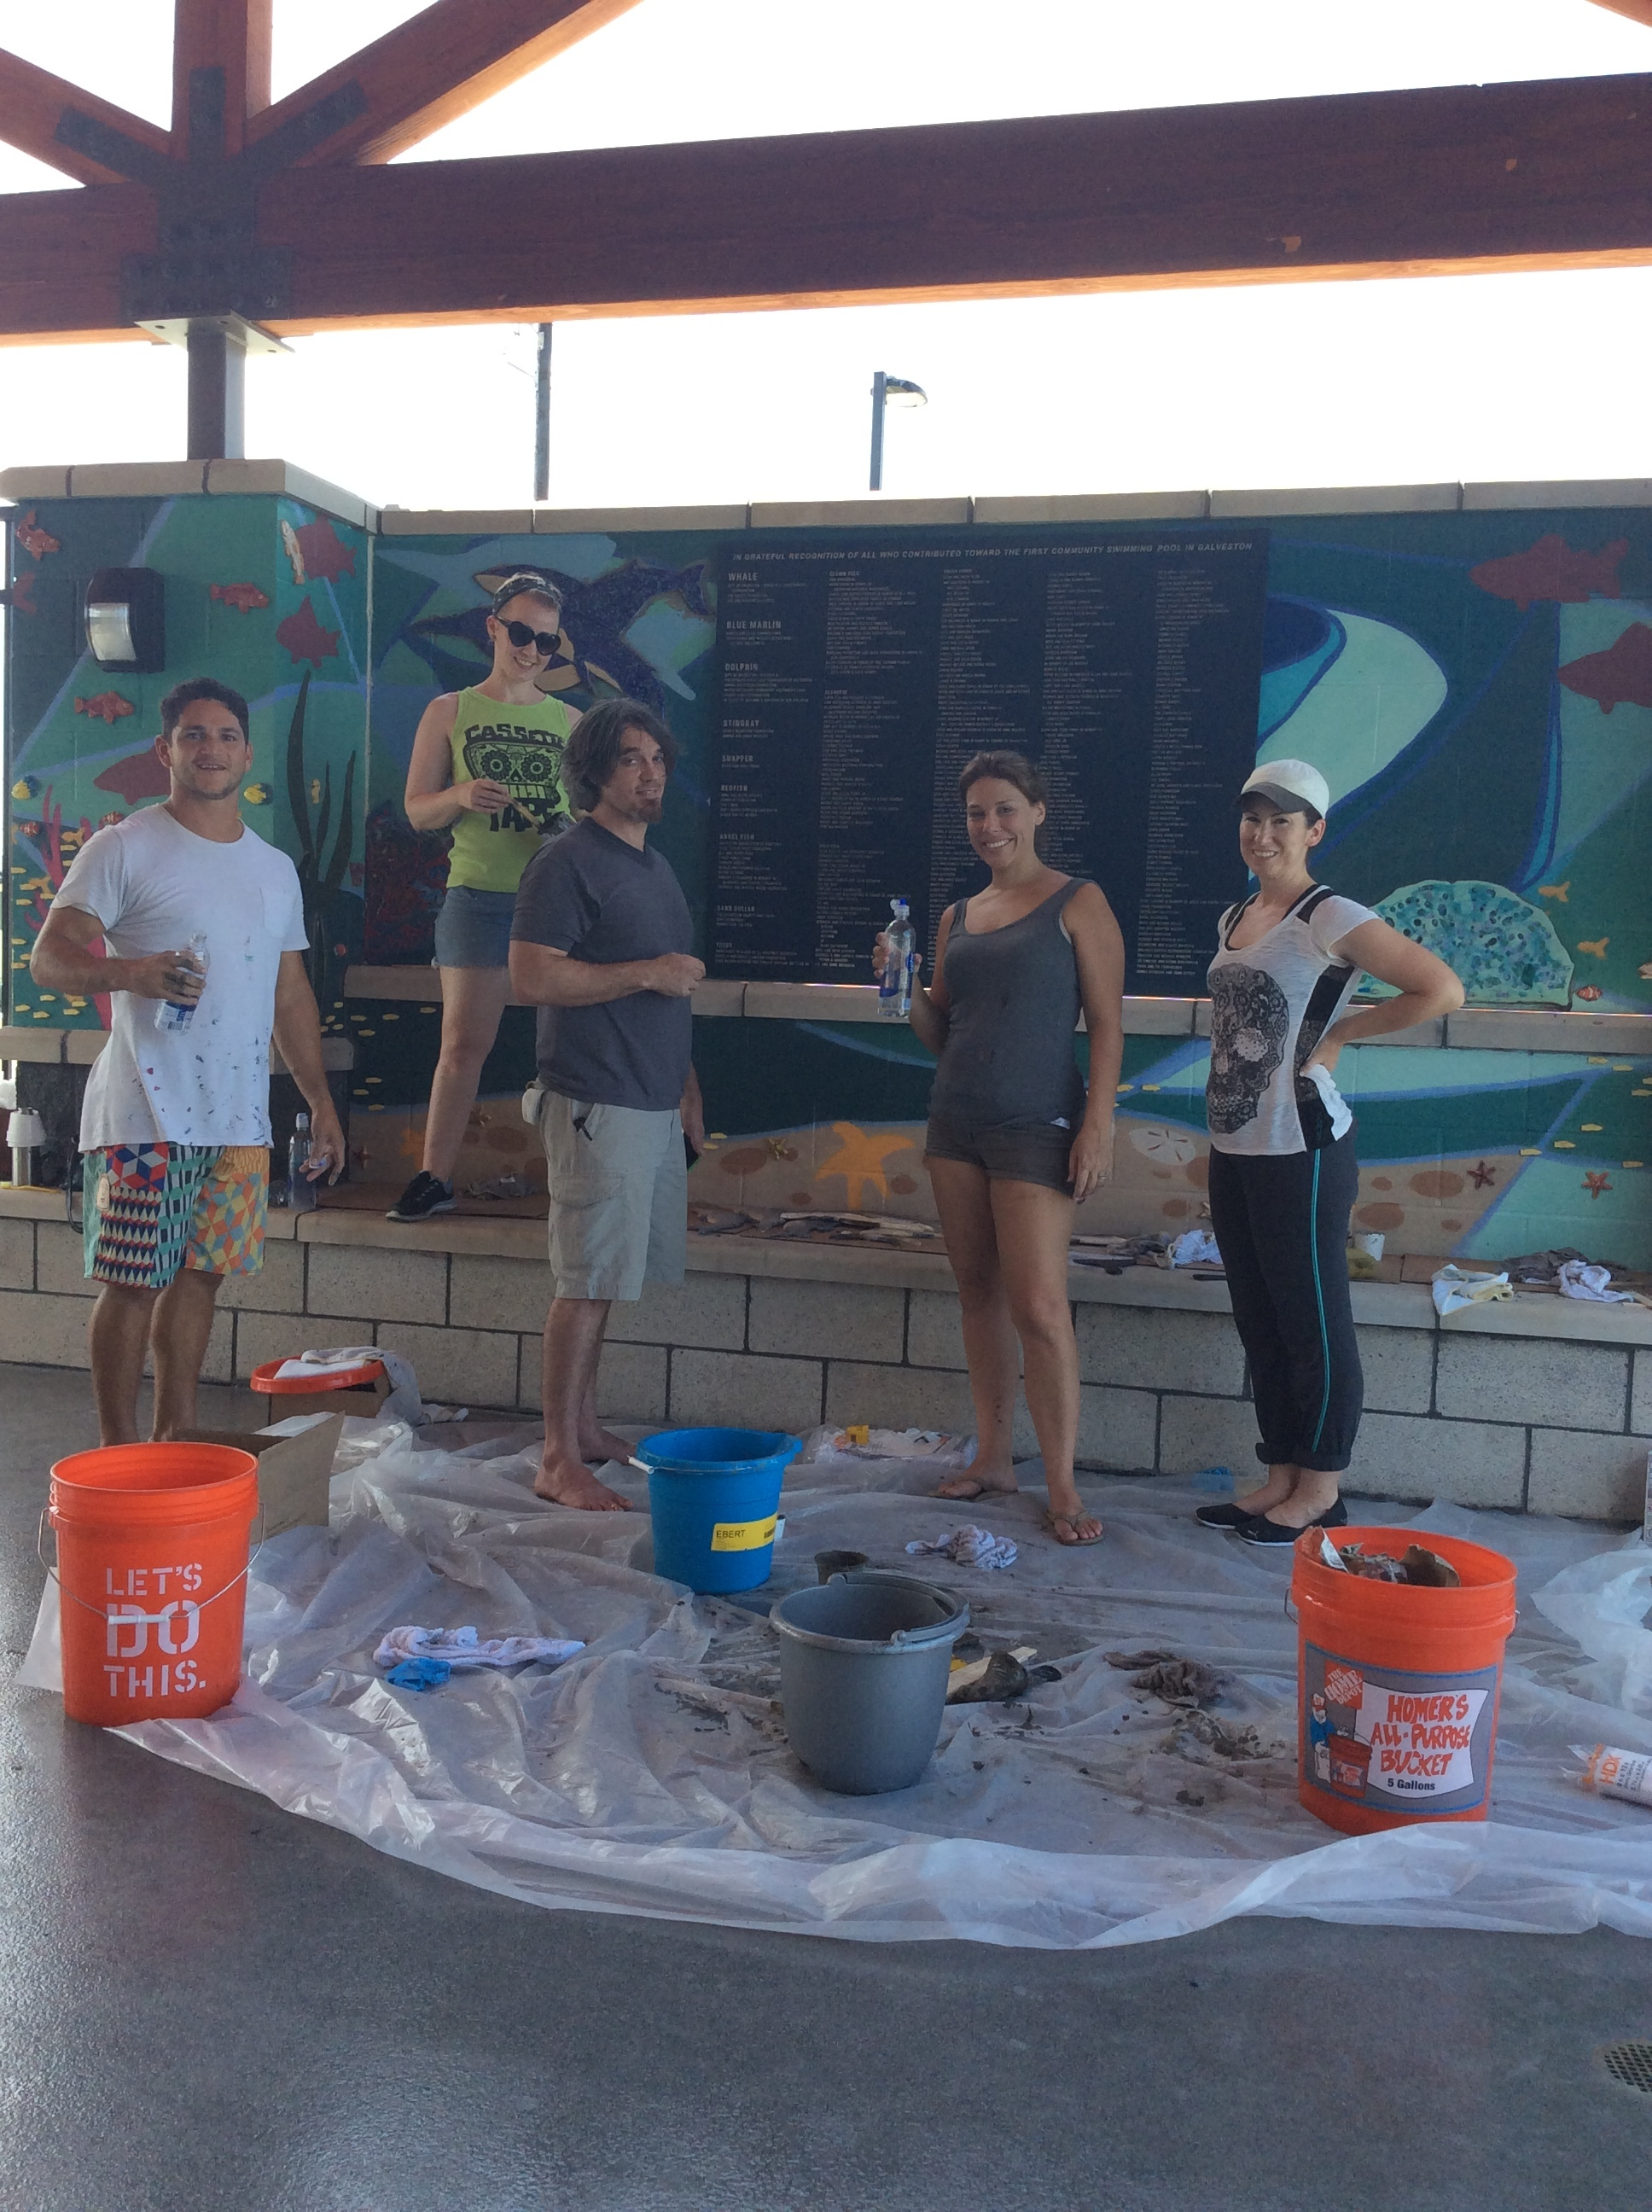 - We loved being able to donate our time to create this awesome donor wall for the new community pool! Mary Ruth worked round the clock to create custom ceramic fish, Gabriel painted an amazing backdrop, Amy created custom glass pieces and in the end our Clay Cup team along with Christina Ebert, Sabrina Stachowski and Clark Duhon pulled this fun and unique mural together. If you are looking for something similar, just reach out. We love our community!